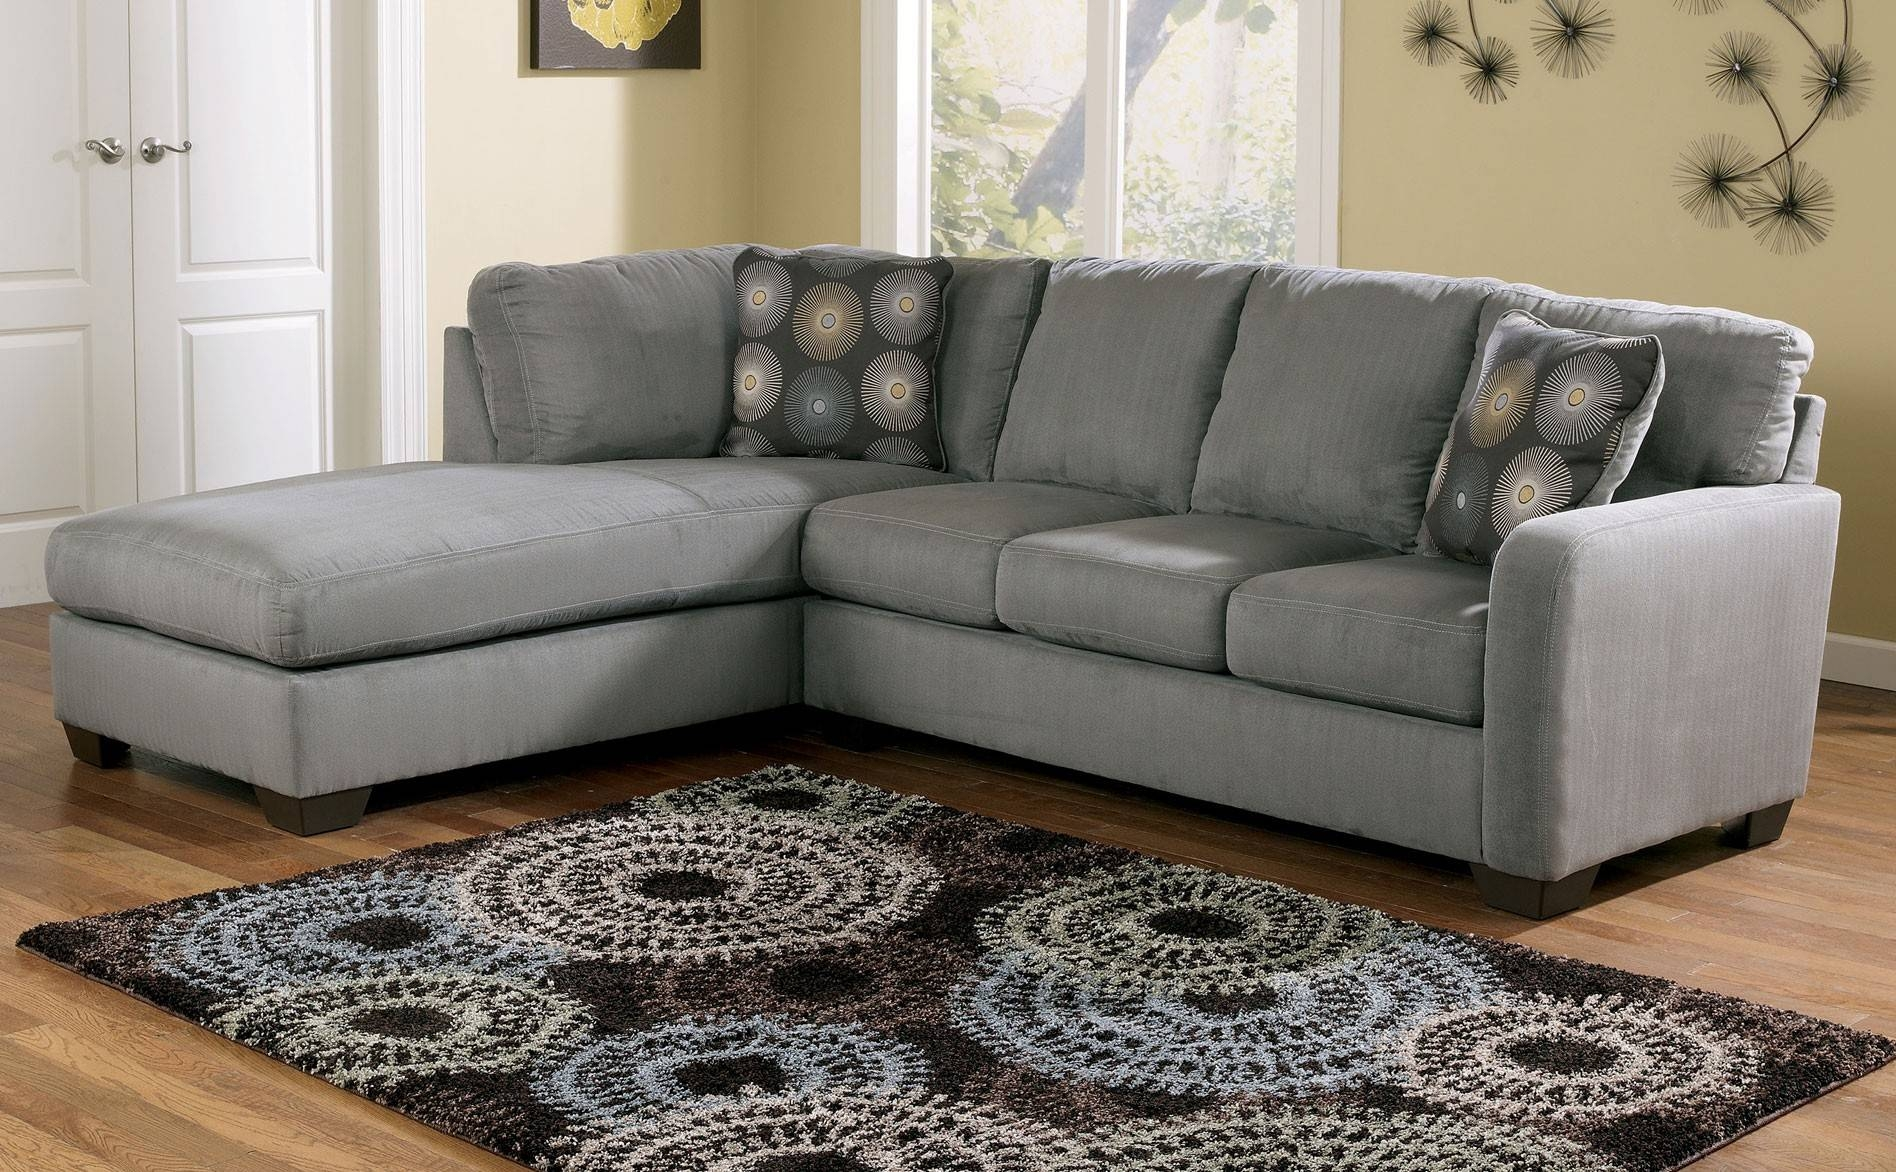 Simple 3 Piece Leather Sectional Sofa With Chaise 64 About Remodel for Individual Piece Sectional Sofas (Image 19 of 25)